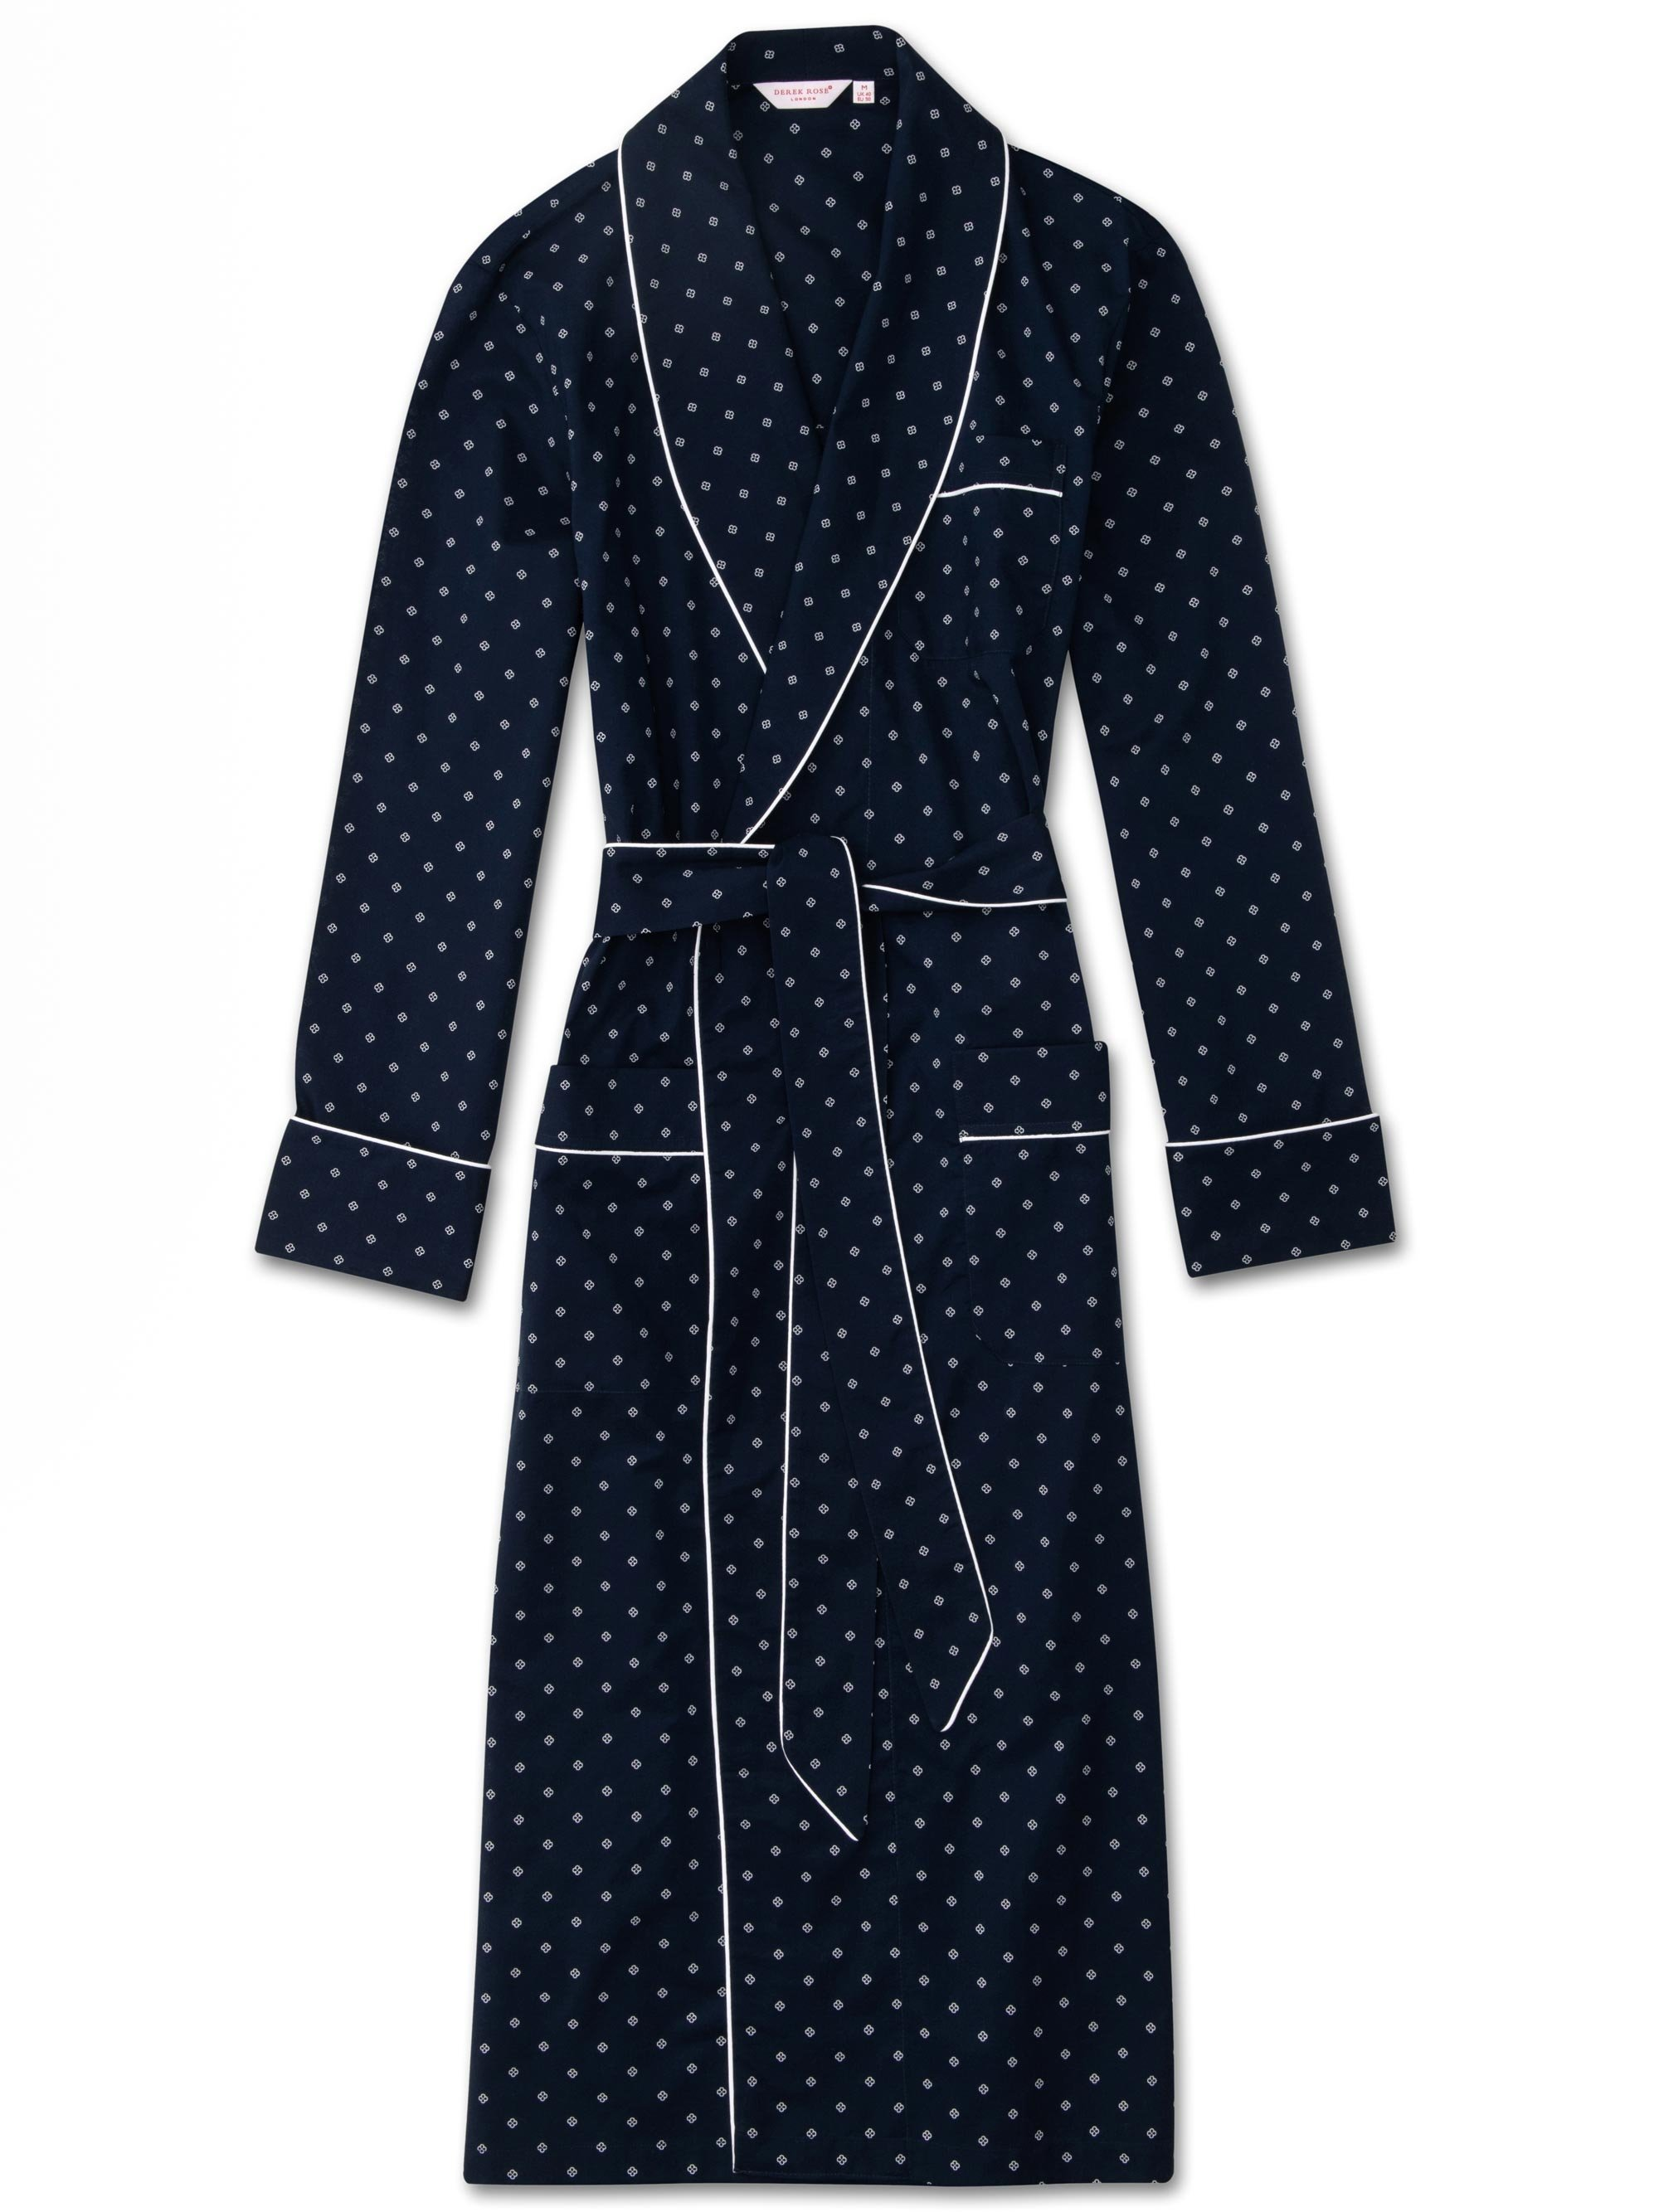 Men's Piped Dressing Gown Nelson 71 Cotton Batiste Navy